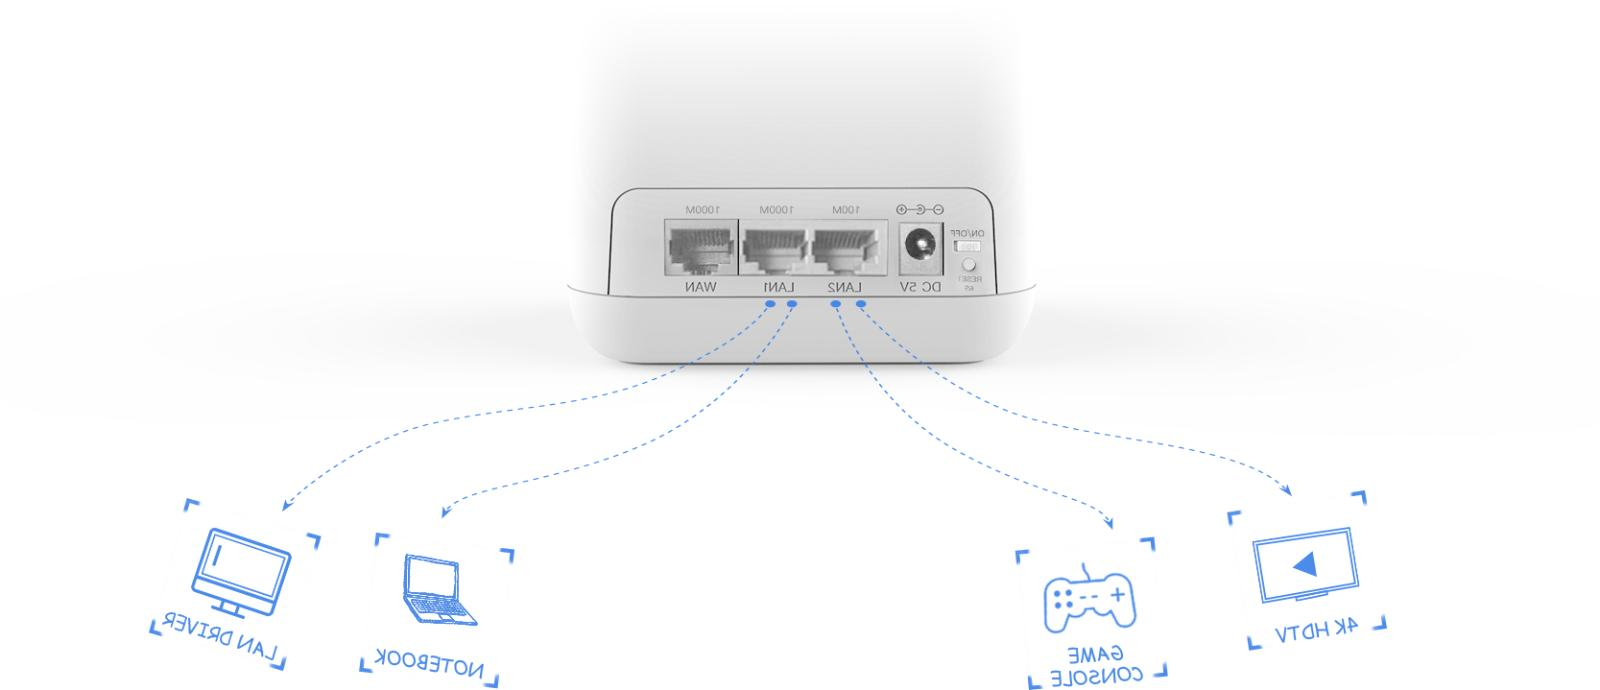 HIGH POWER Whole Home 802.11ac Mesh System 3 EXTENDERS